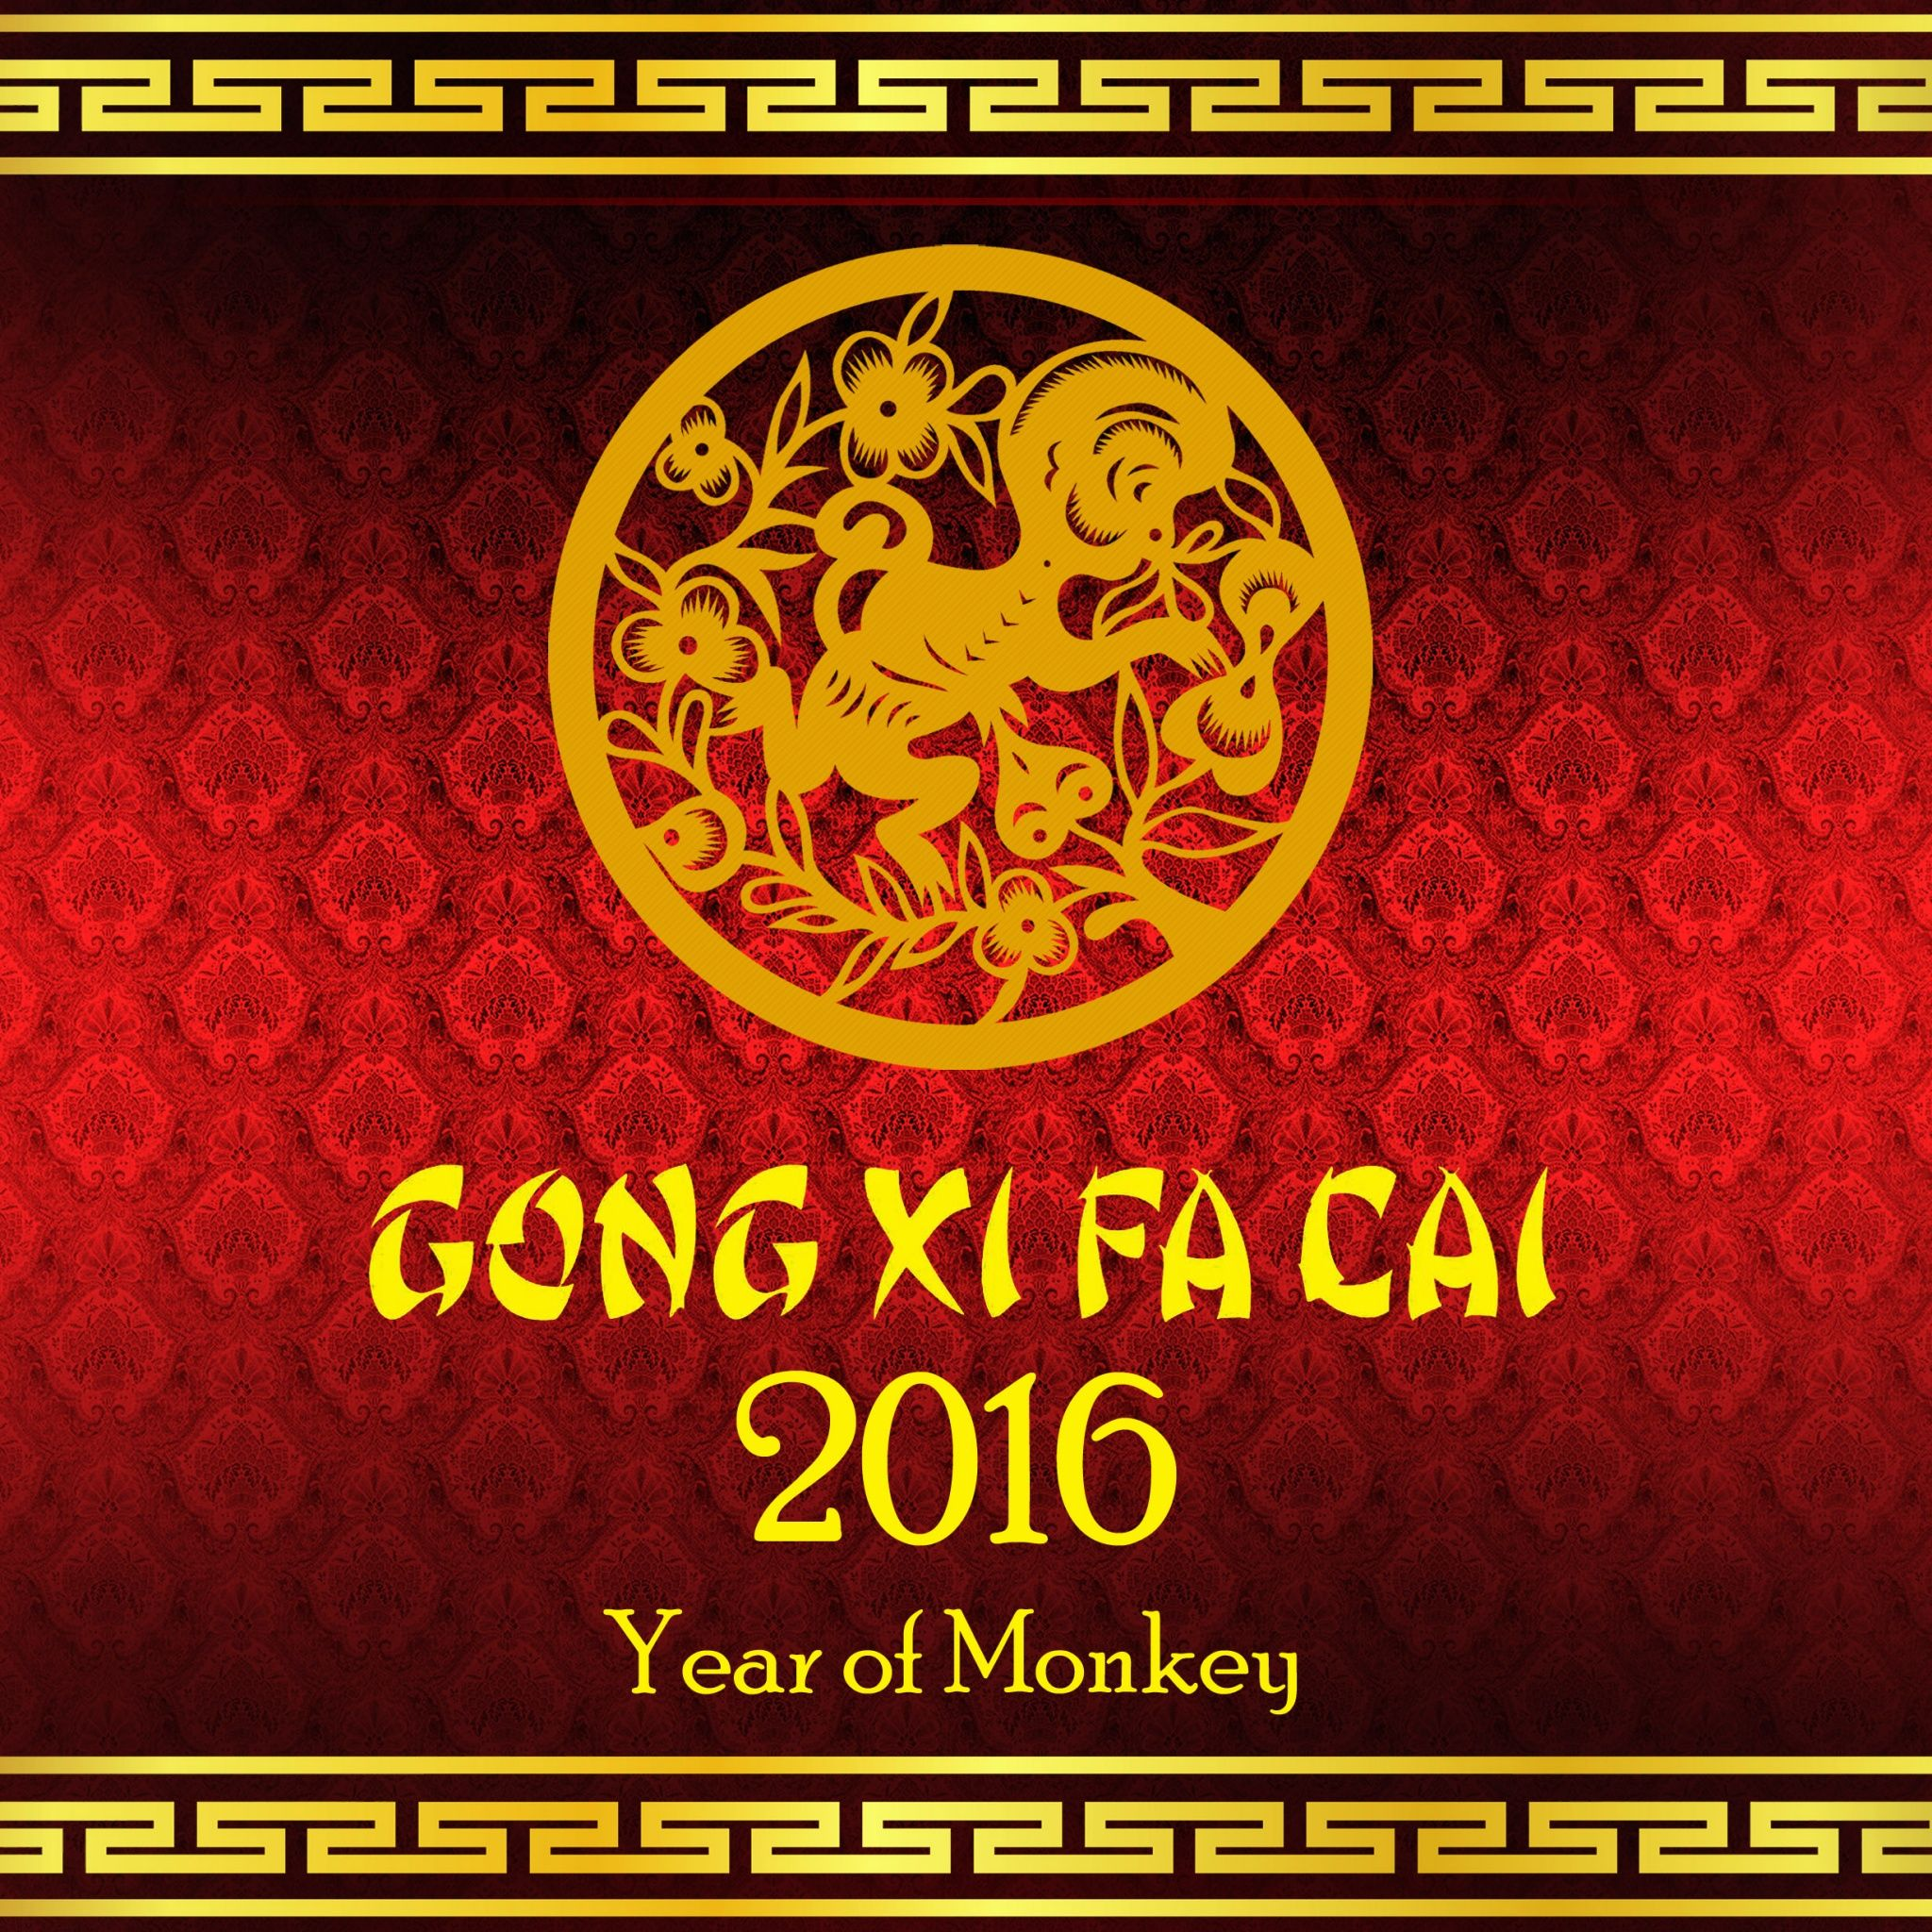 Happy lunar chinese new year 2016 greetings for family and friends happy lunar chinese new year 2016 greetings for family and friends year of monkey kristyandbryce Gallery